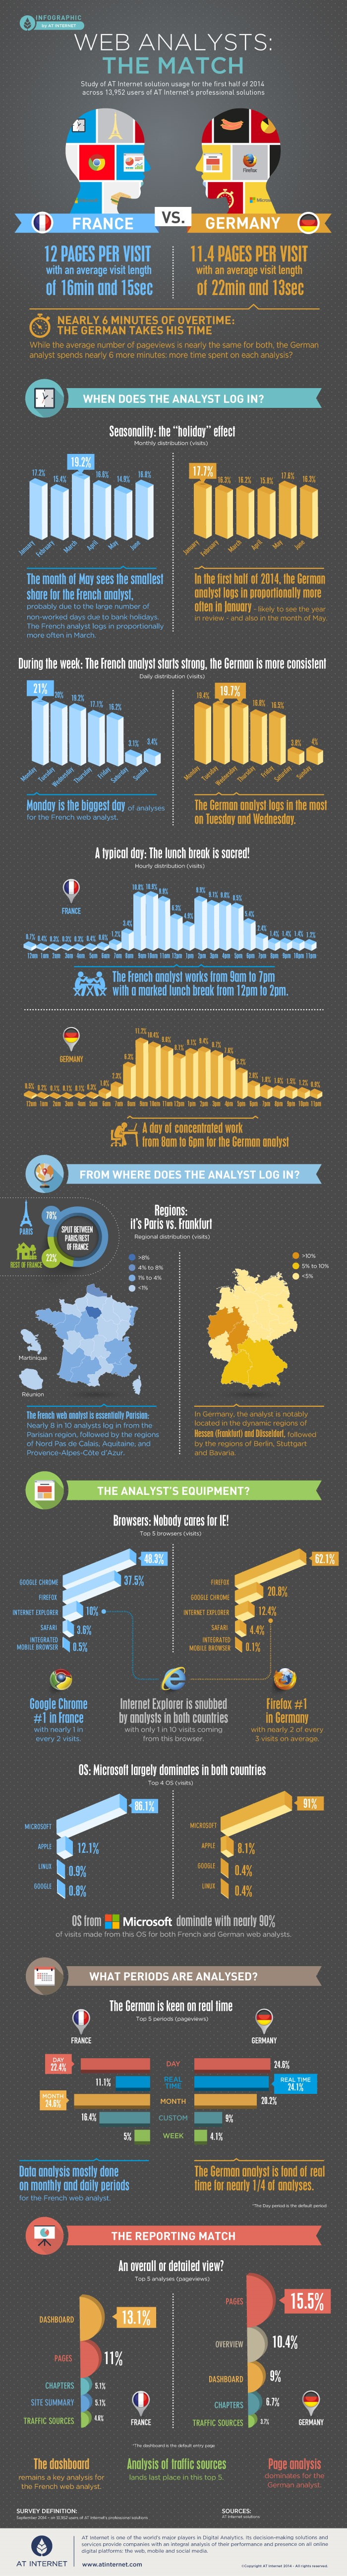 Infographic France vs. Germany Web Analysts – The Match